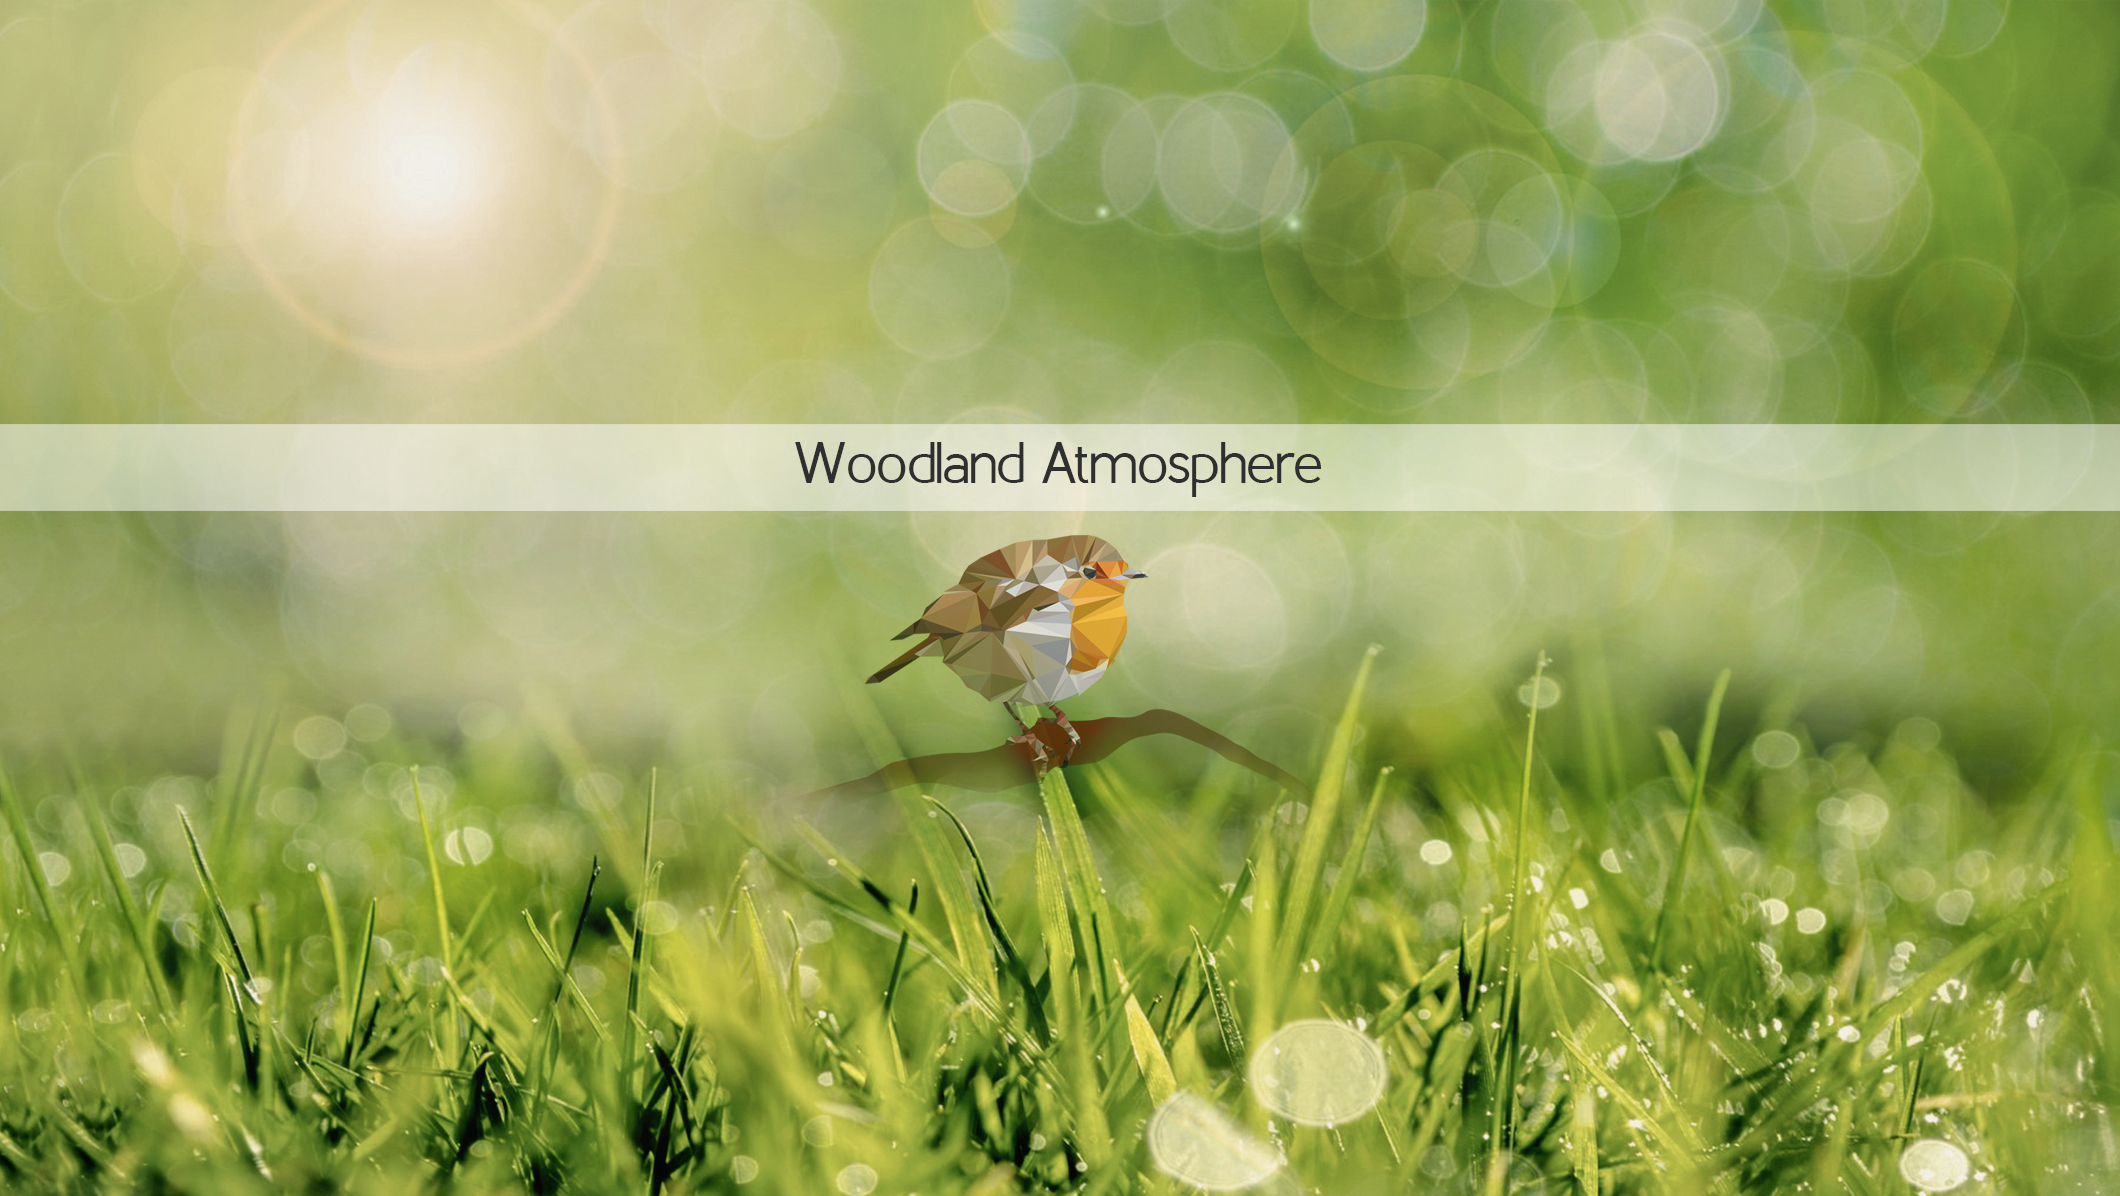 Click image to buy the Woodland Atmosphere library. Scroll down for free sound.